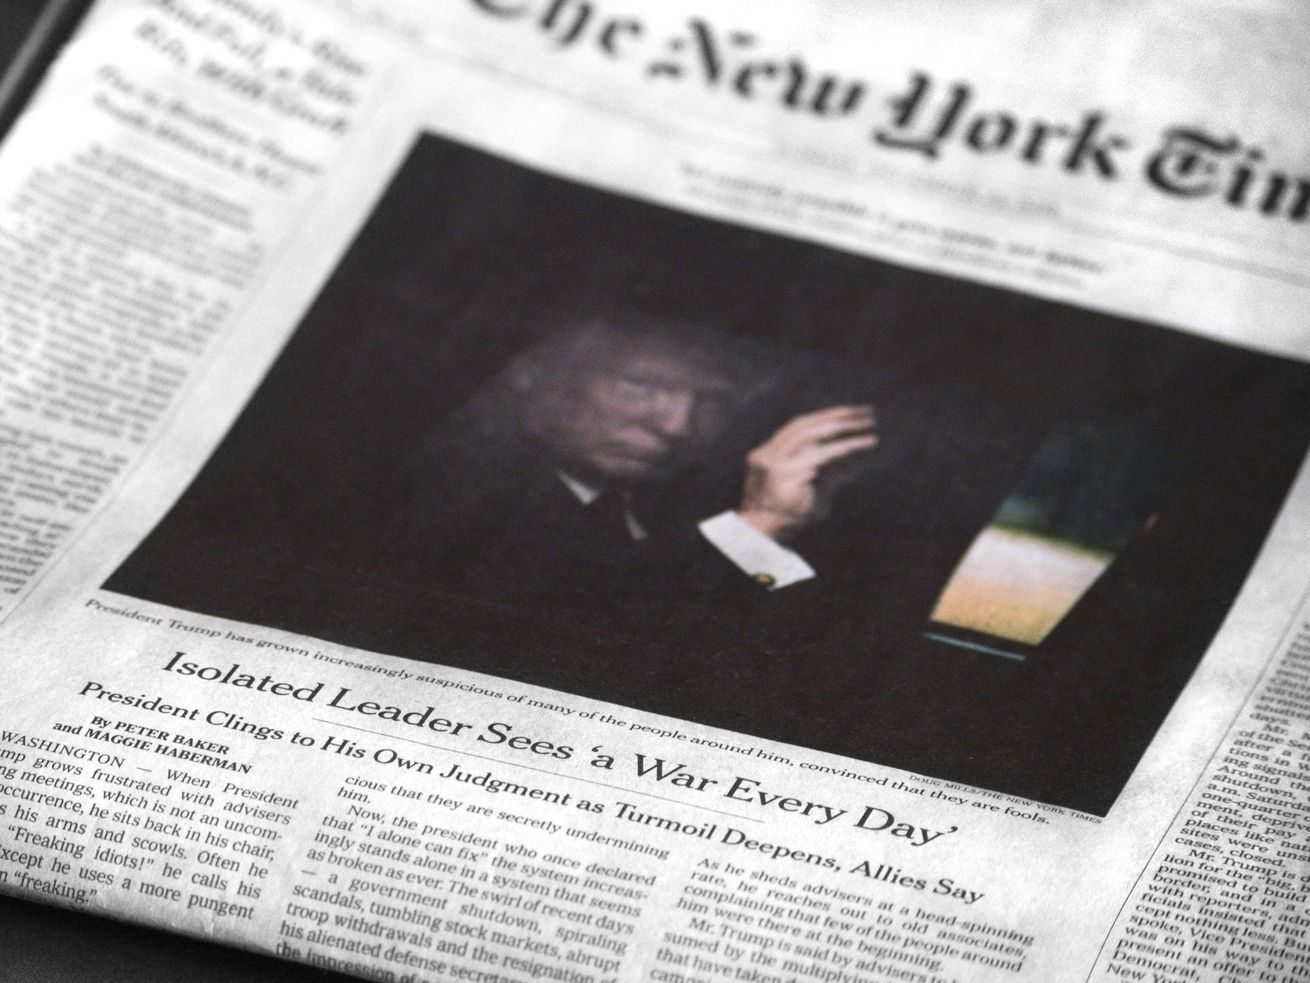 A copy of the December 23, 2018, edition of the New York Times shows a picture of President Trump.